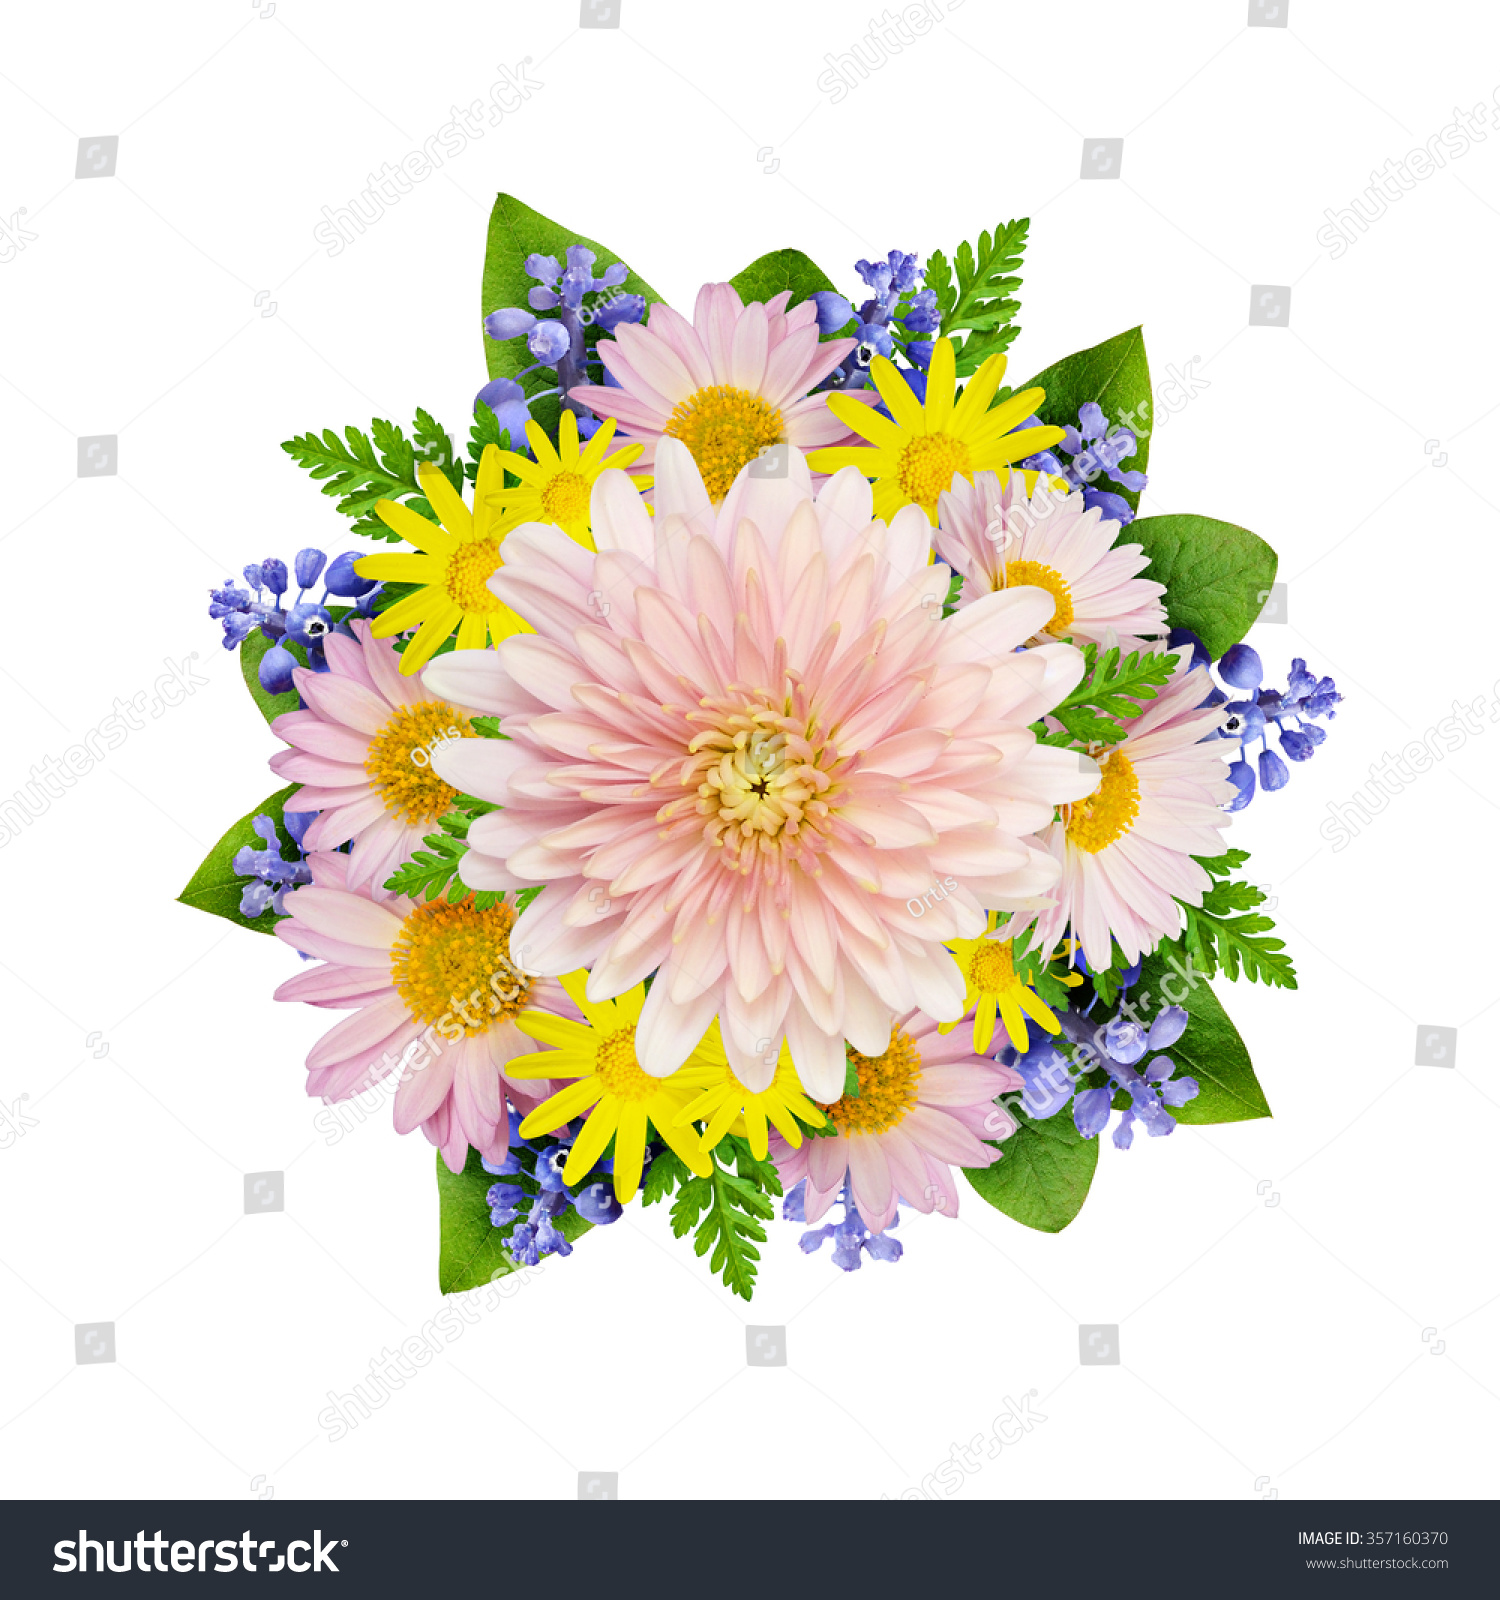 Aster and wild flowers flowers bouquet isolated on white ez canvas id 357160370 izmirmasajfo